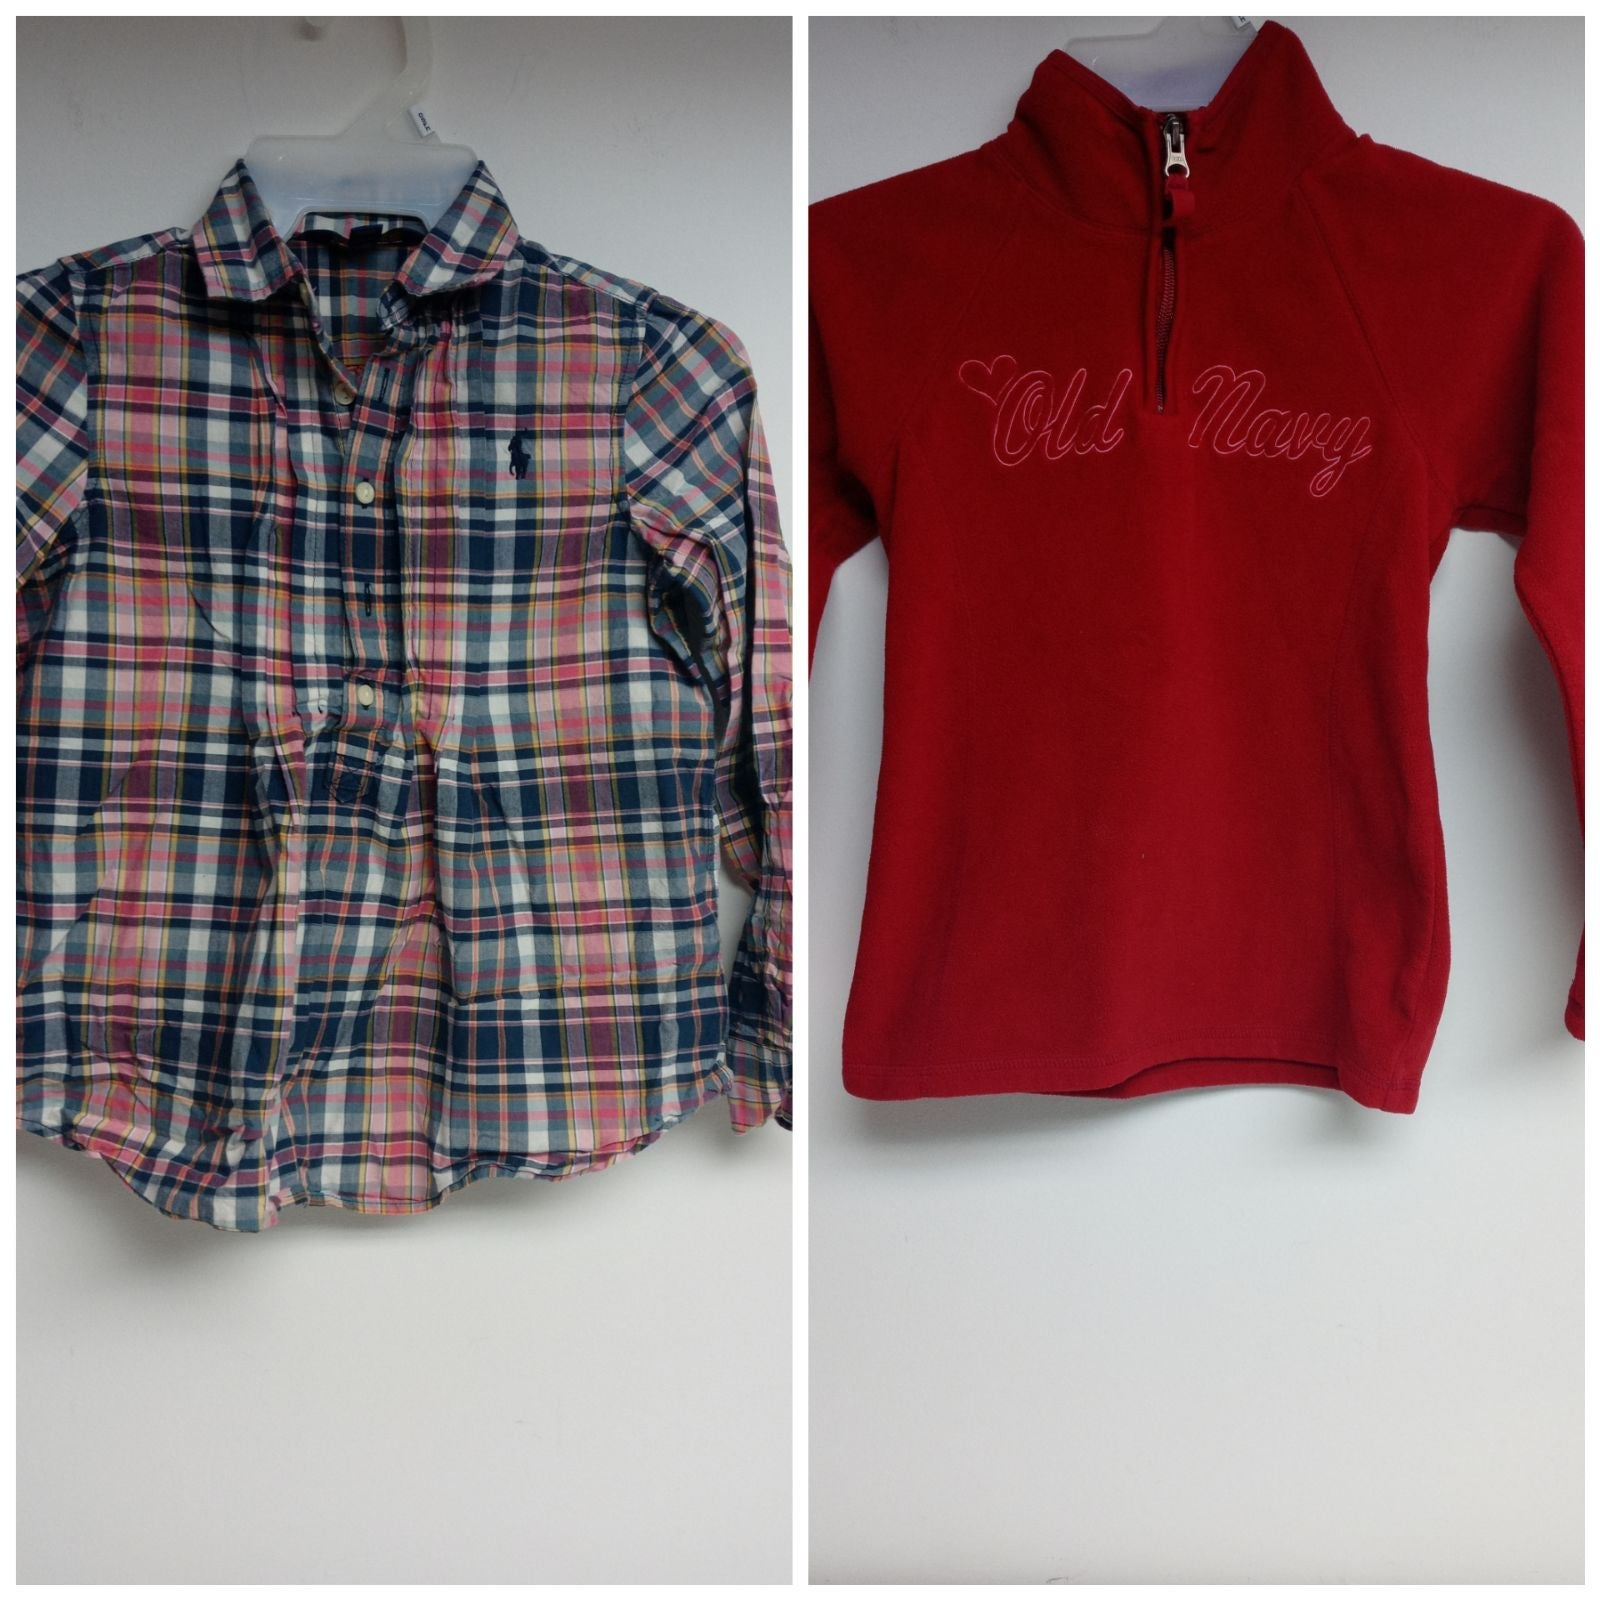 Lot of 2 tops Girls size 8